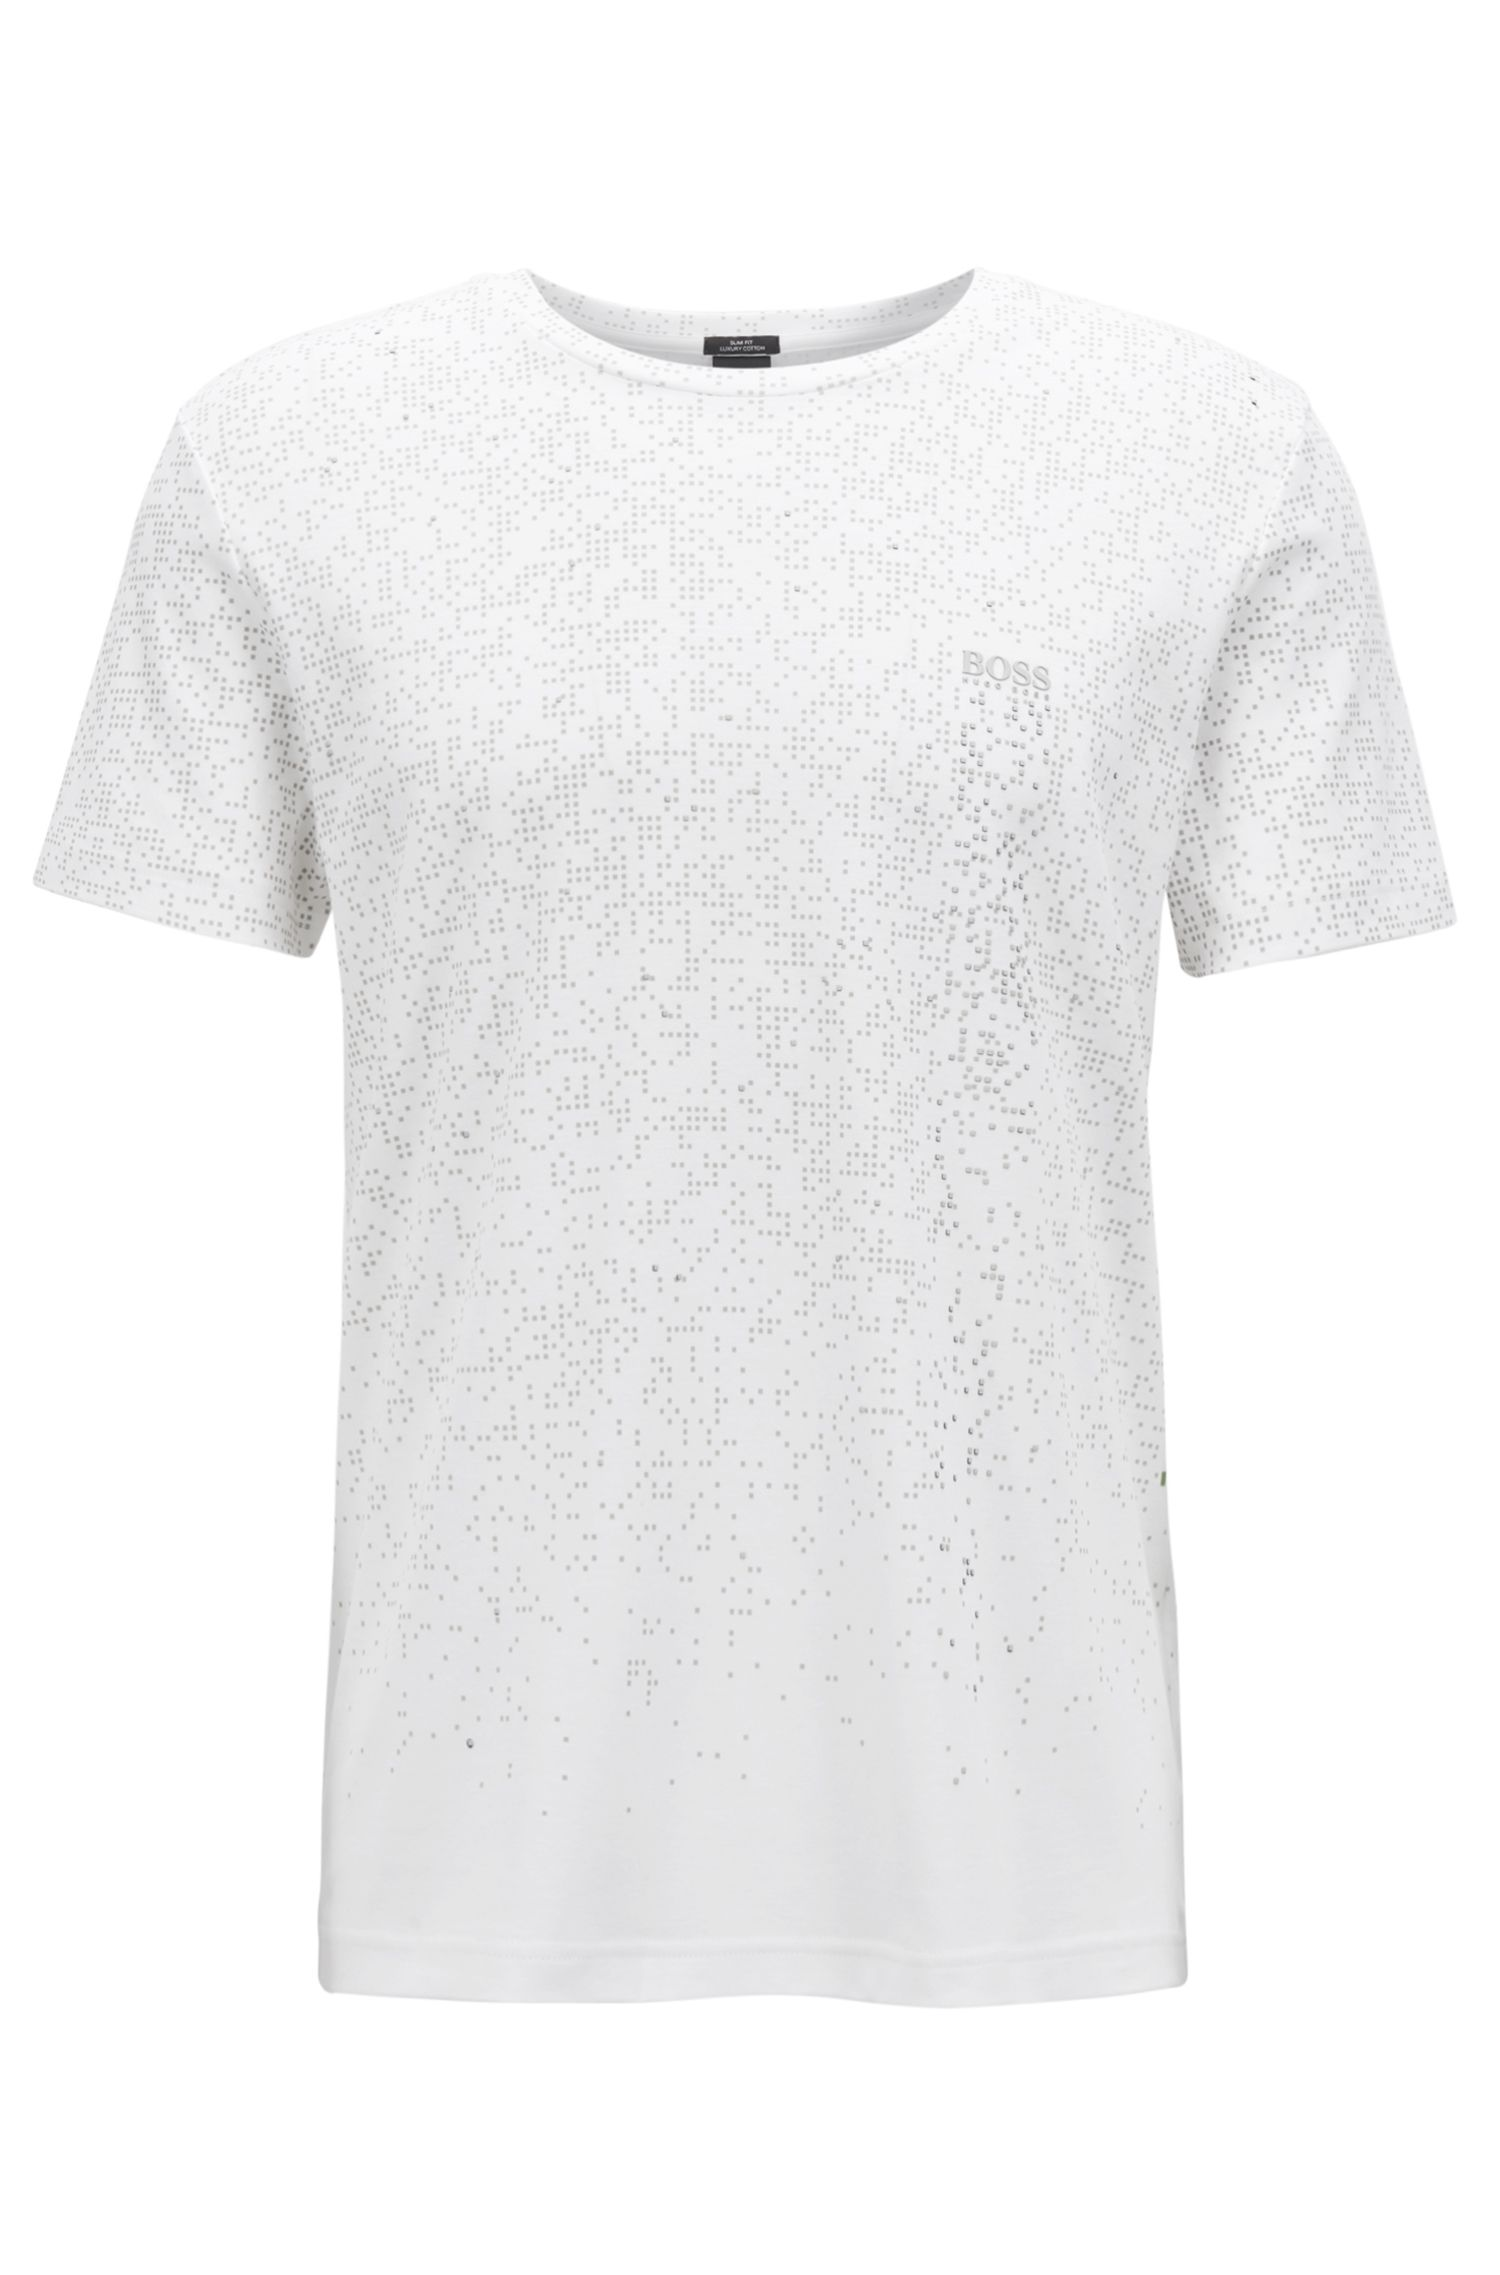 Slim-fit cotton T-shirt with pixelated pattern, White